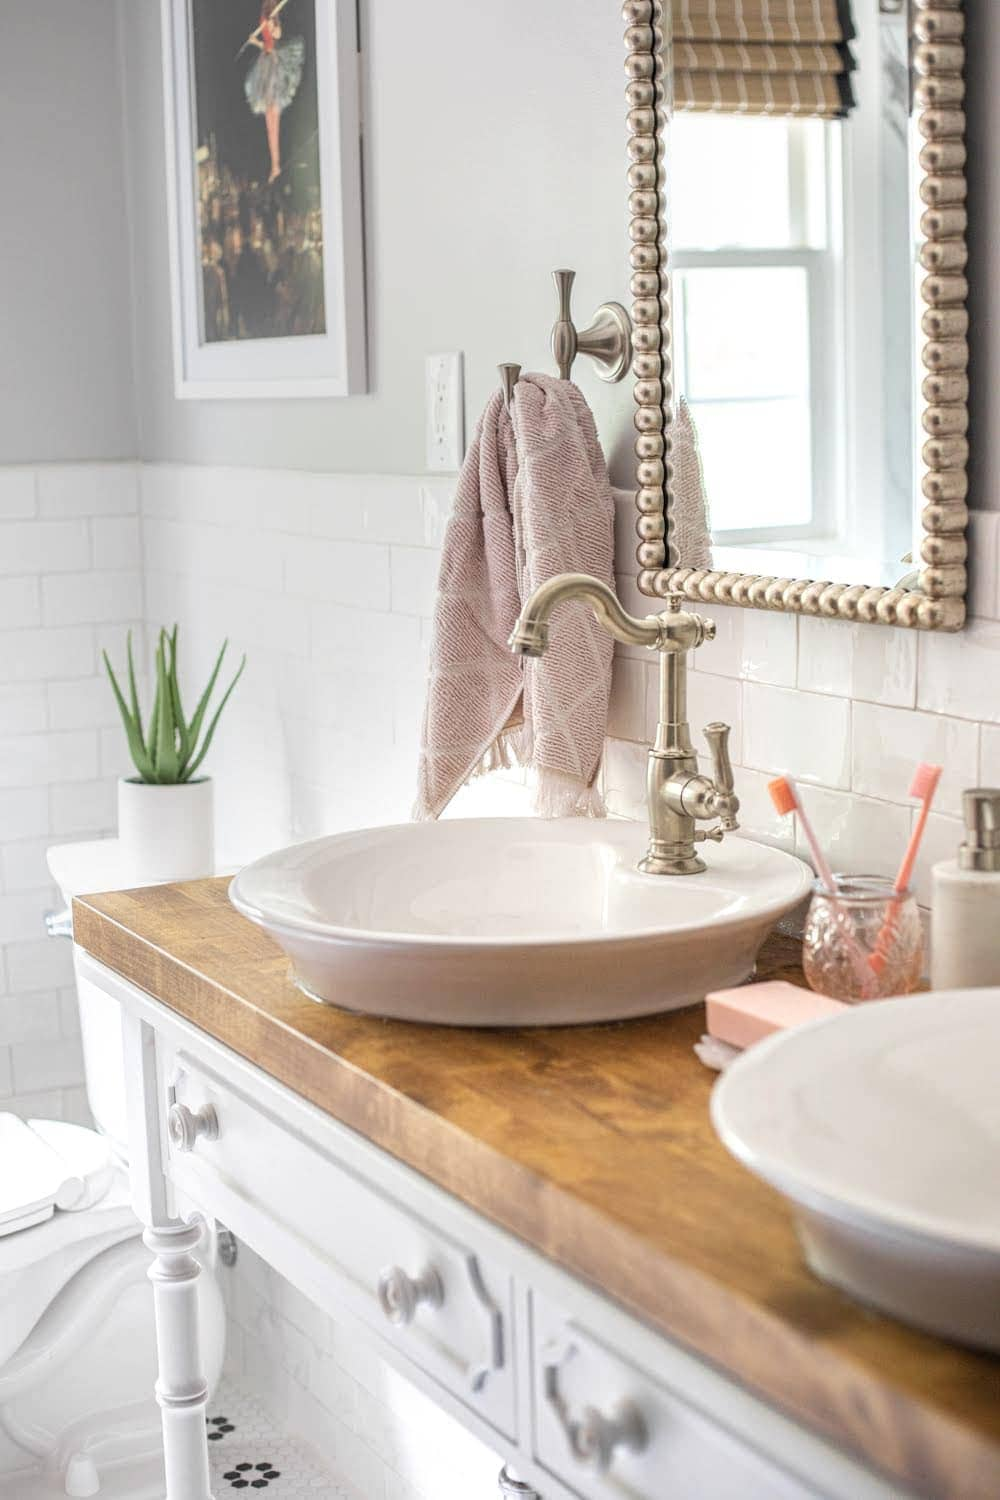 Whimsical, classic kids bathroom makeover | vessel sinks on a converted console table for a bathroom vanity